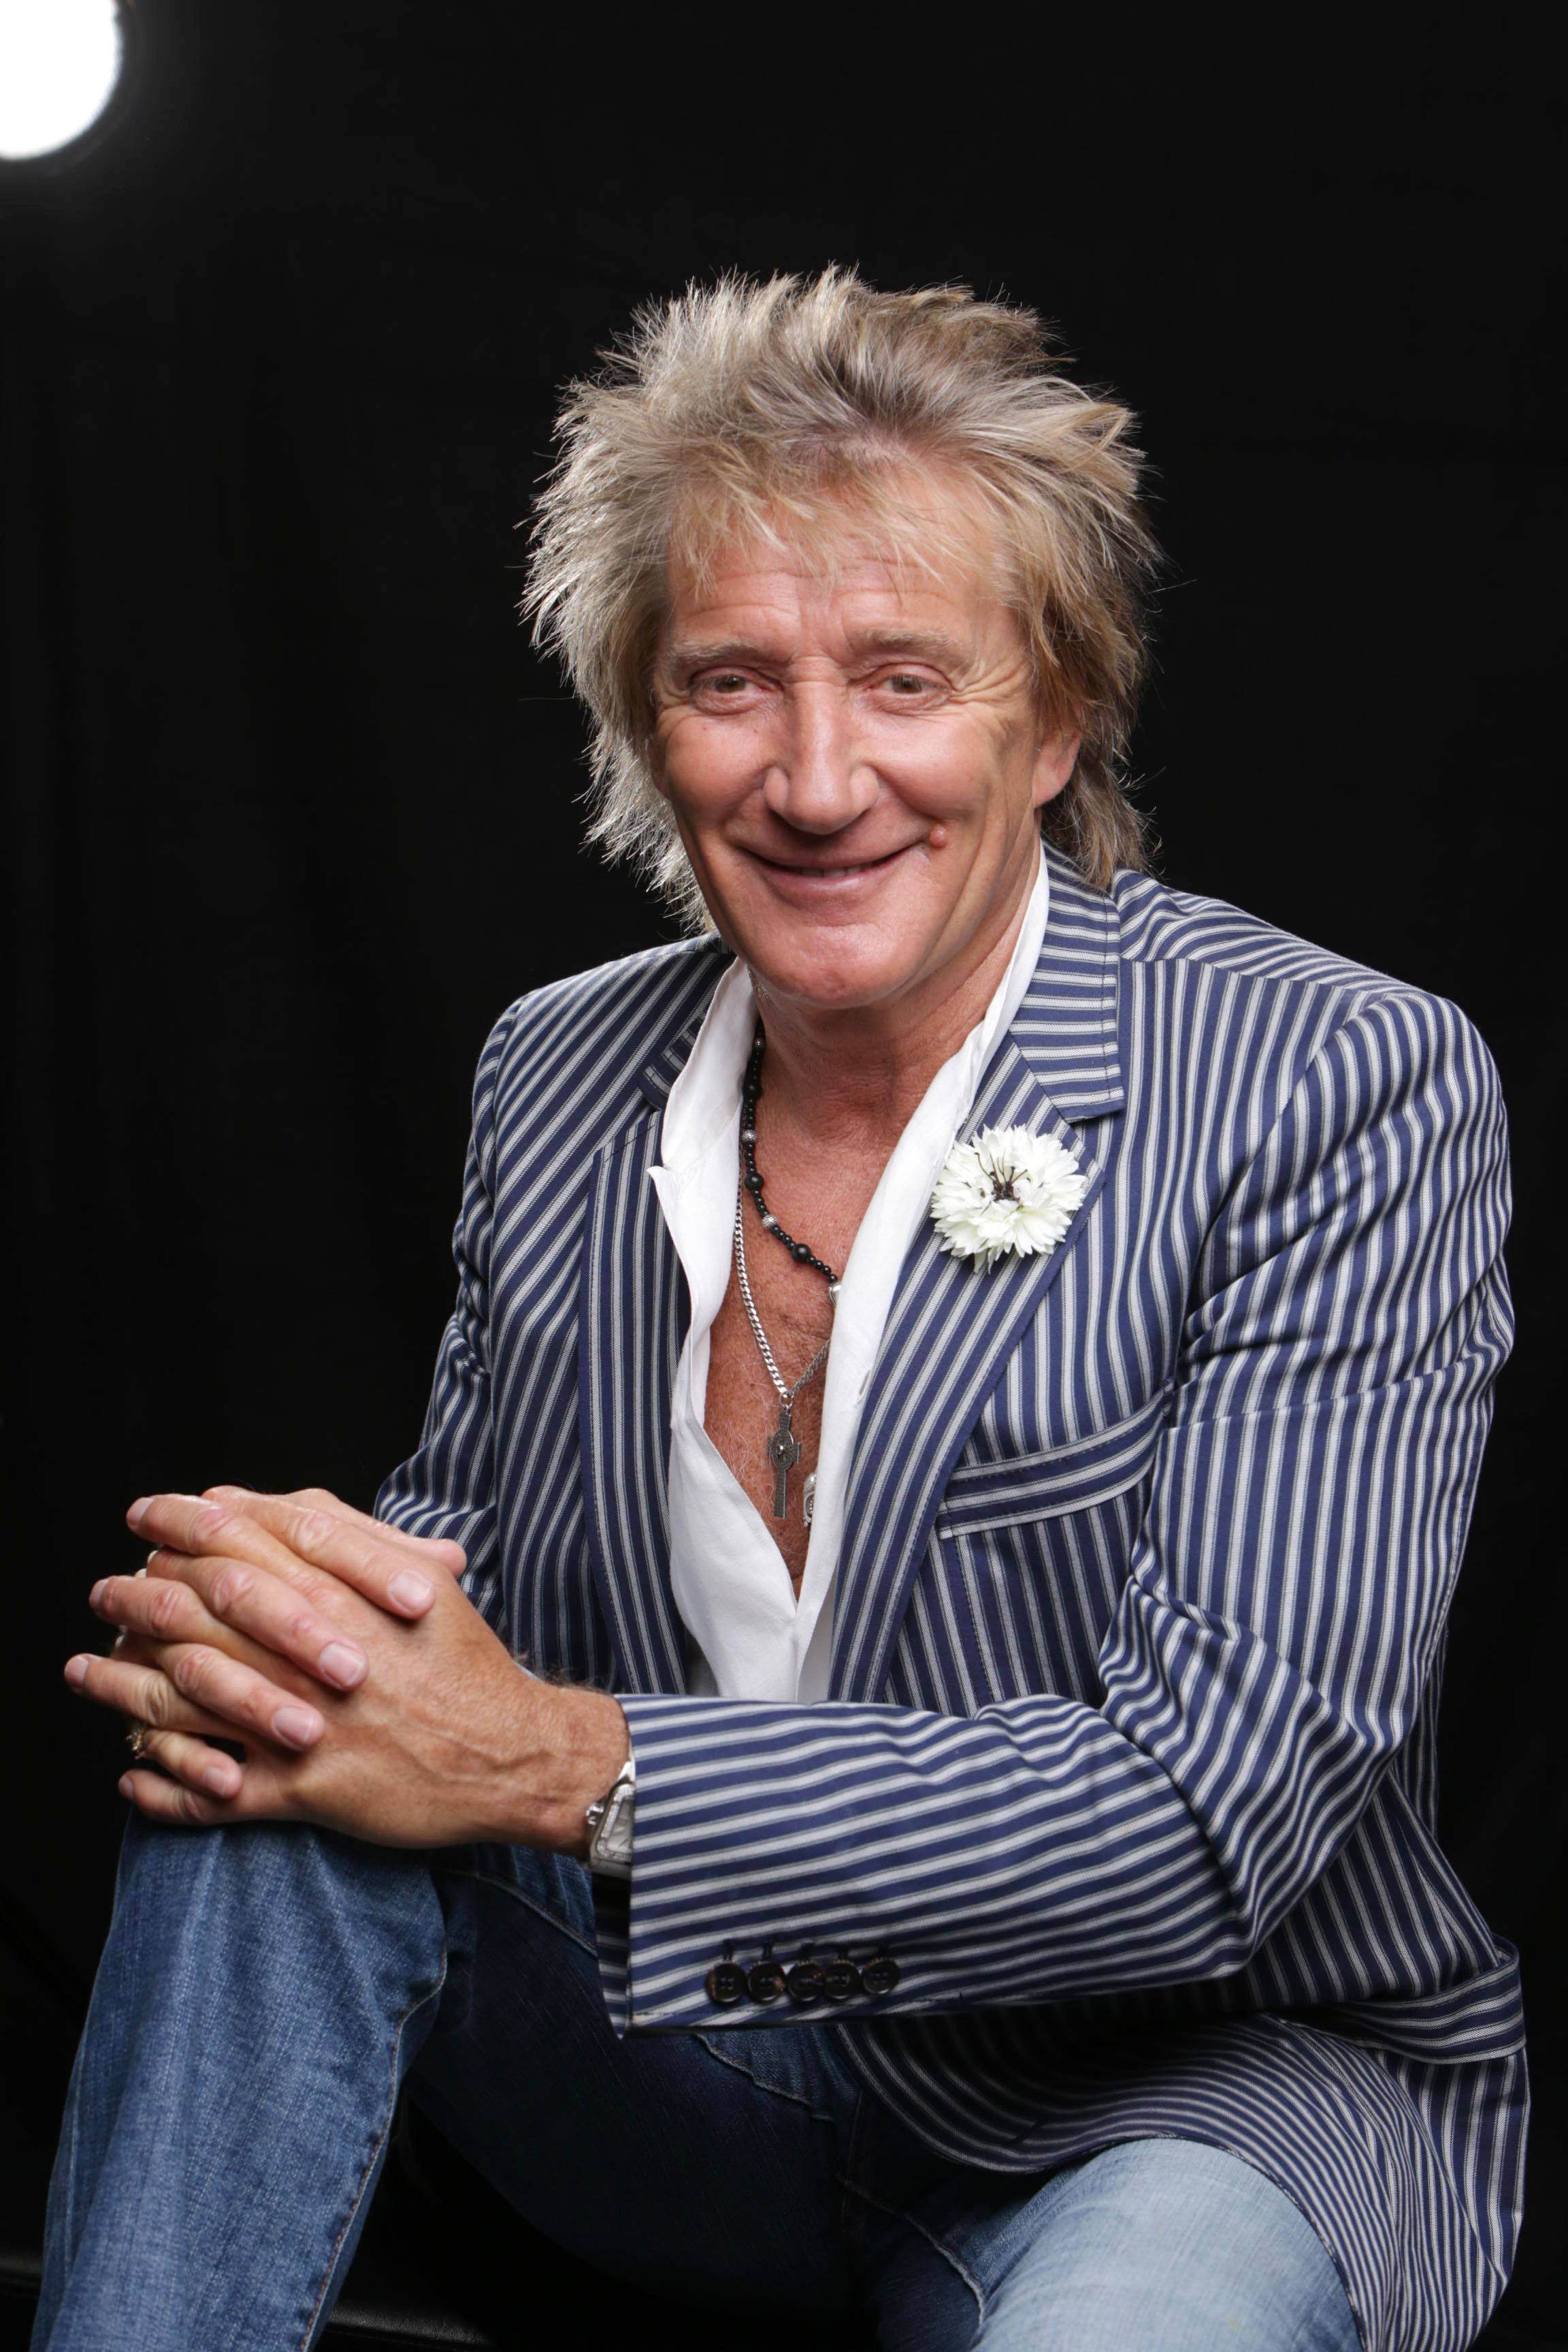 Rod Stewart performs in concert with Santana on Saturday, Aug. 16, at the Allstate Arena in Rosemont.